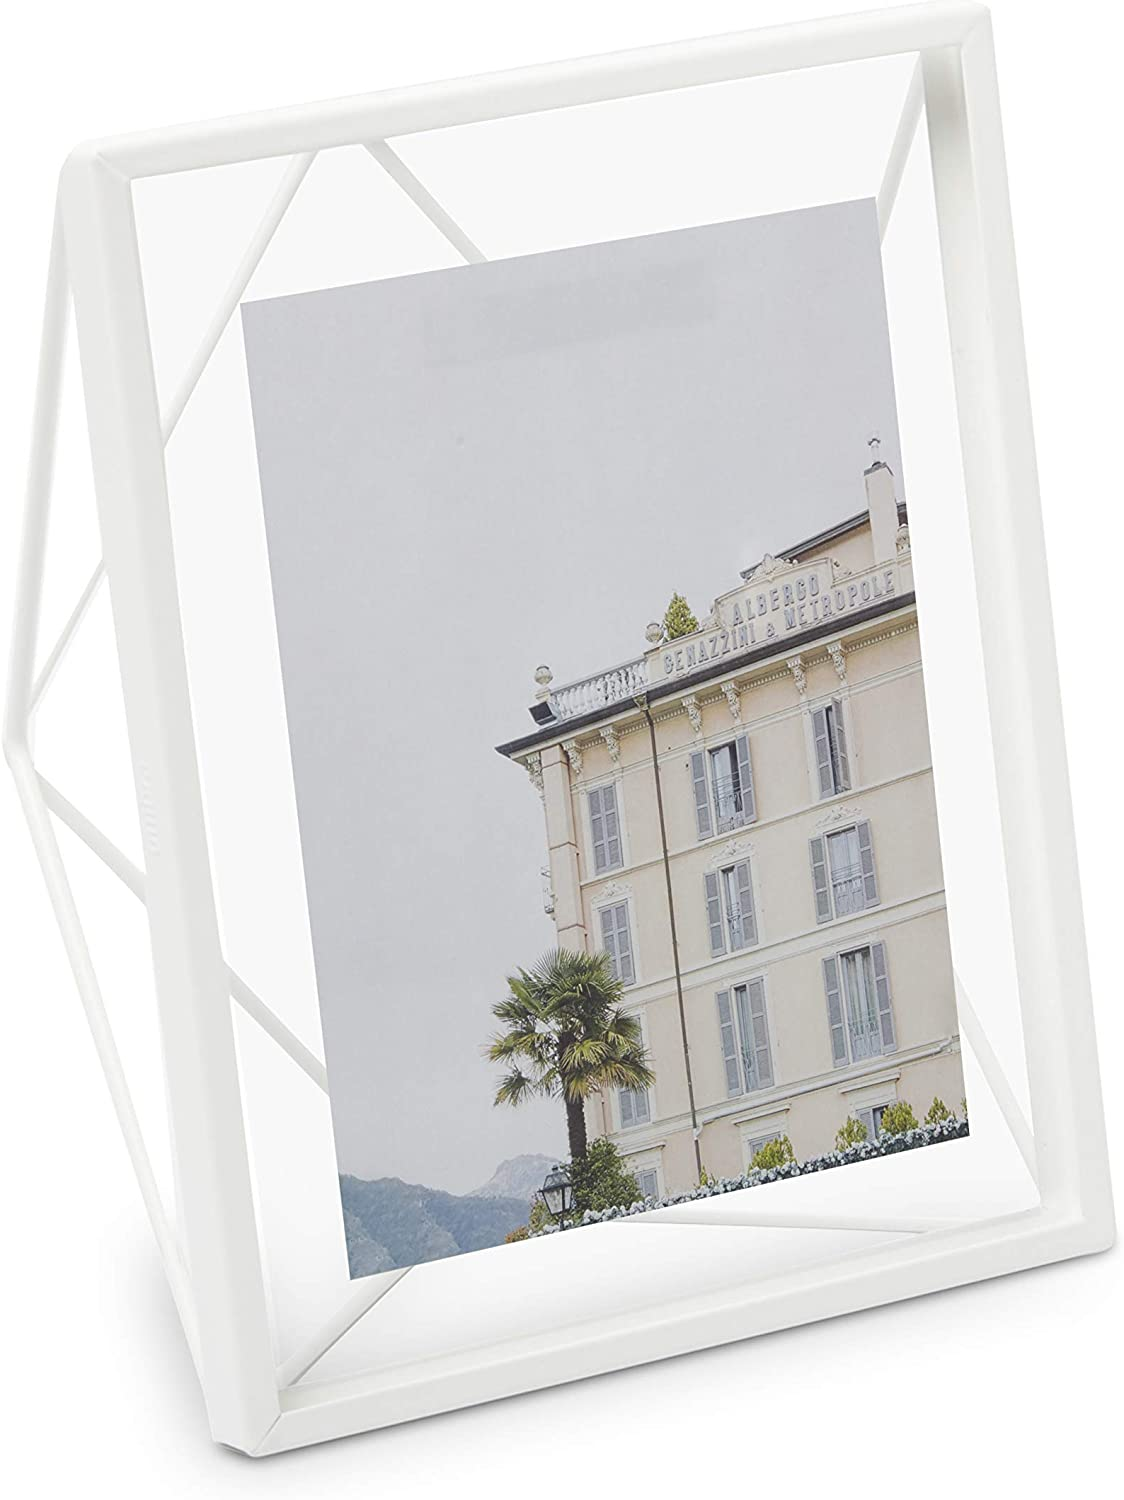 """Umbra, White Prisma 8x10 Picture Frame for Desktop or Wall, Holds One 8""""x10"""" Photo, 8 by 10-Inch"""